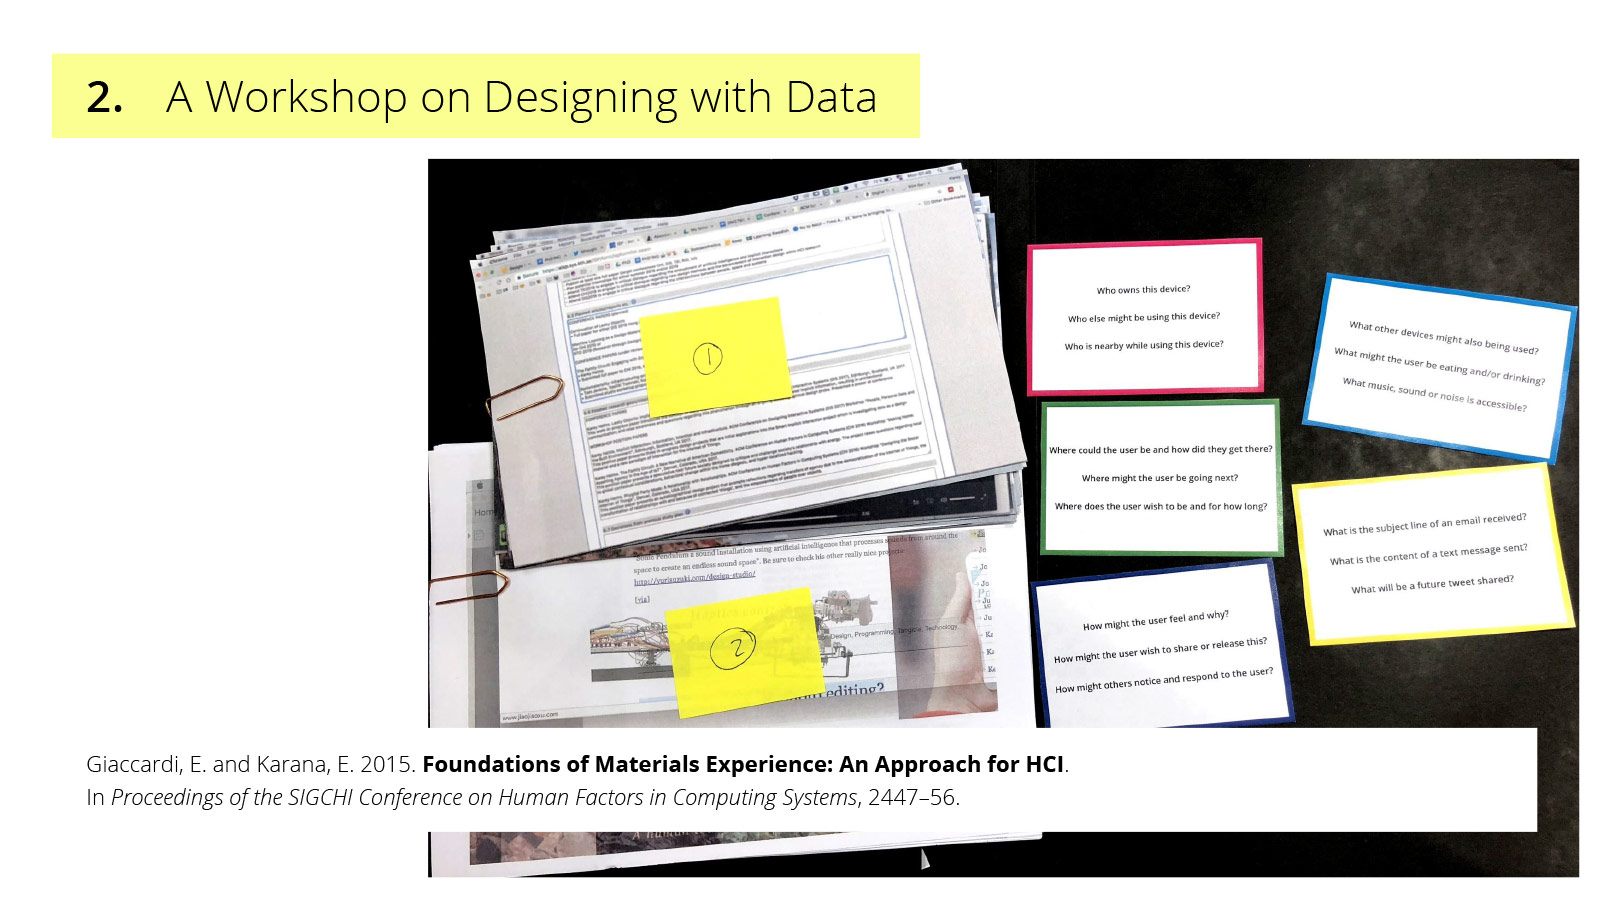 UX of AI presentation - designing with data workshop